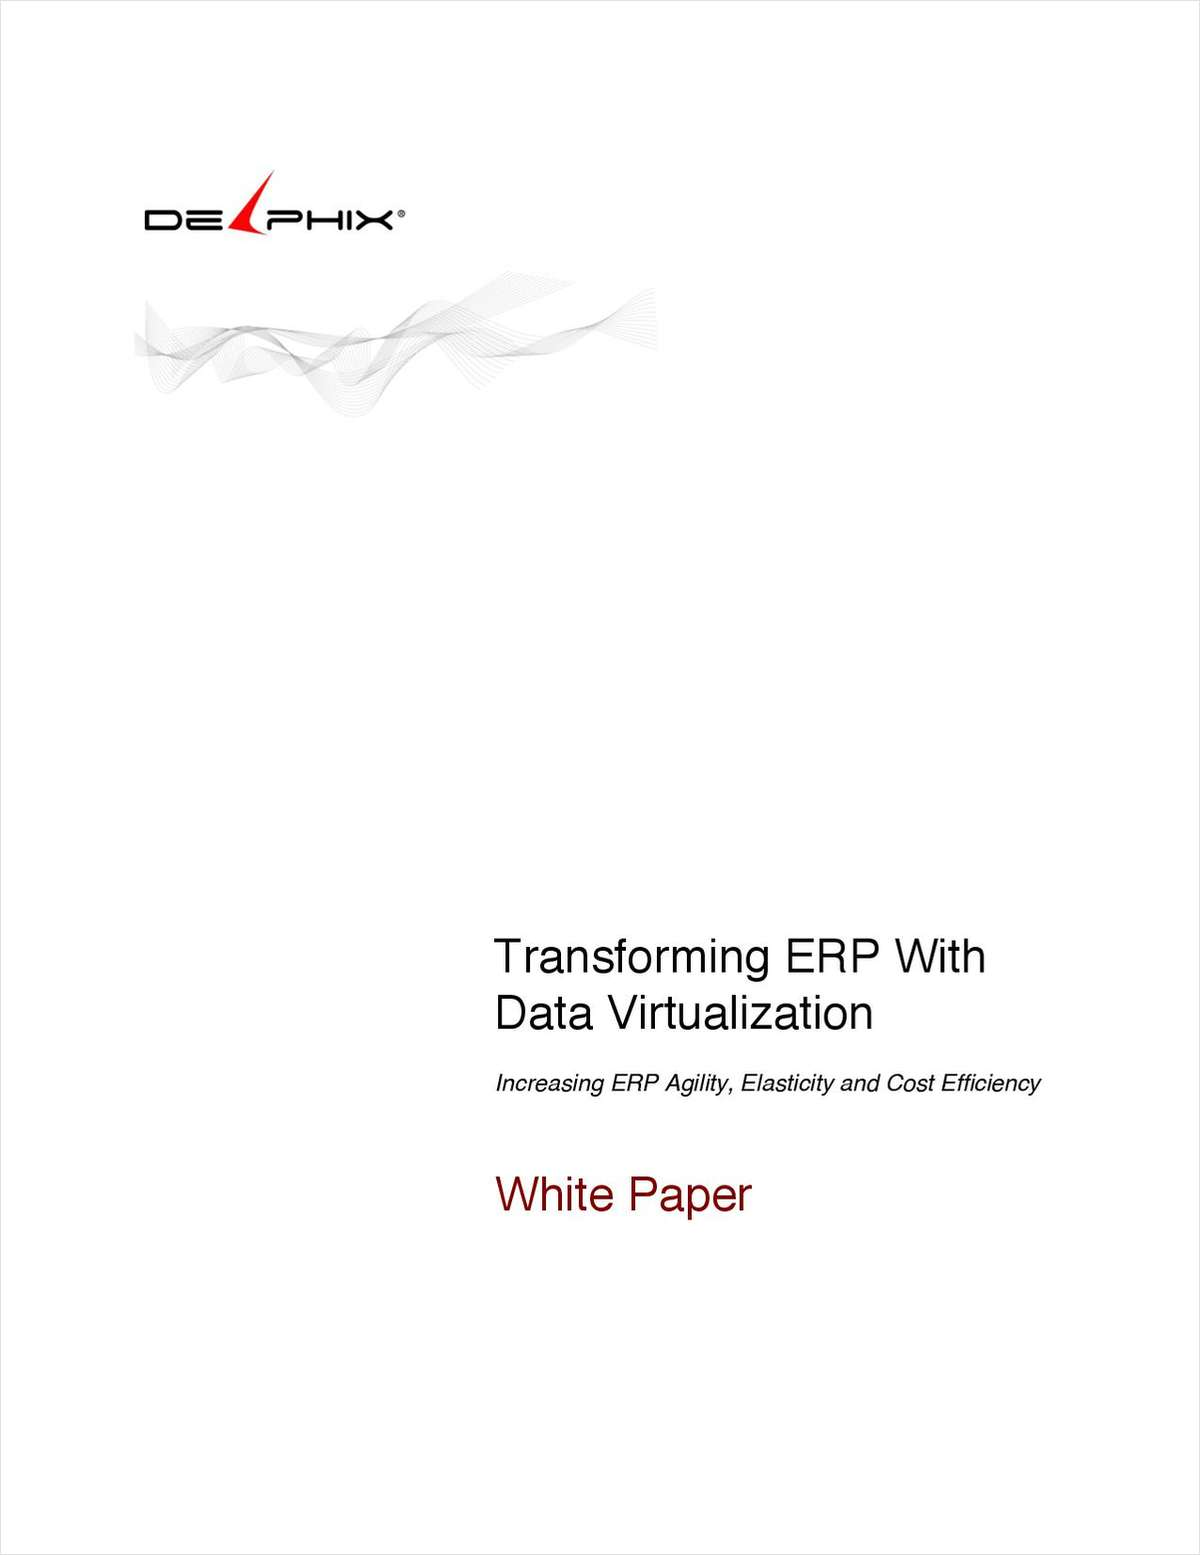 Transforming ERP with Data Virtualization